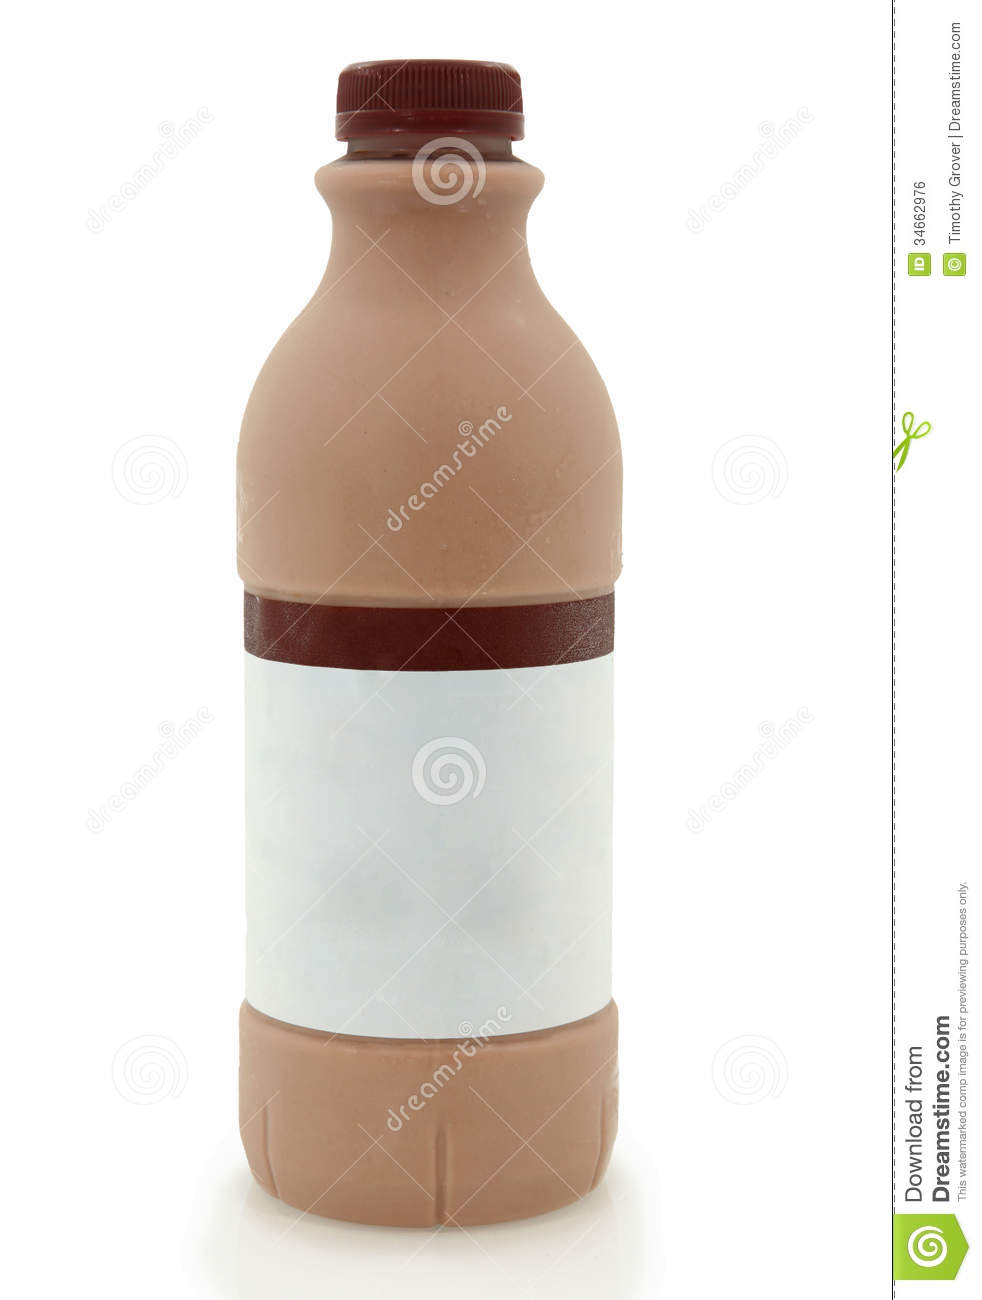 Chocolate Milk Bottle Isolated On White Royalty Free Stock Image ...